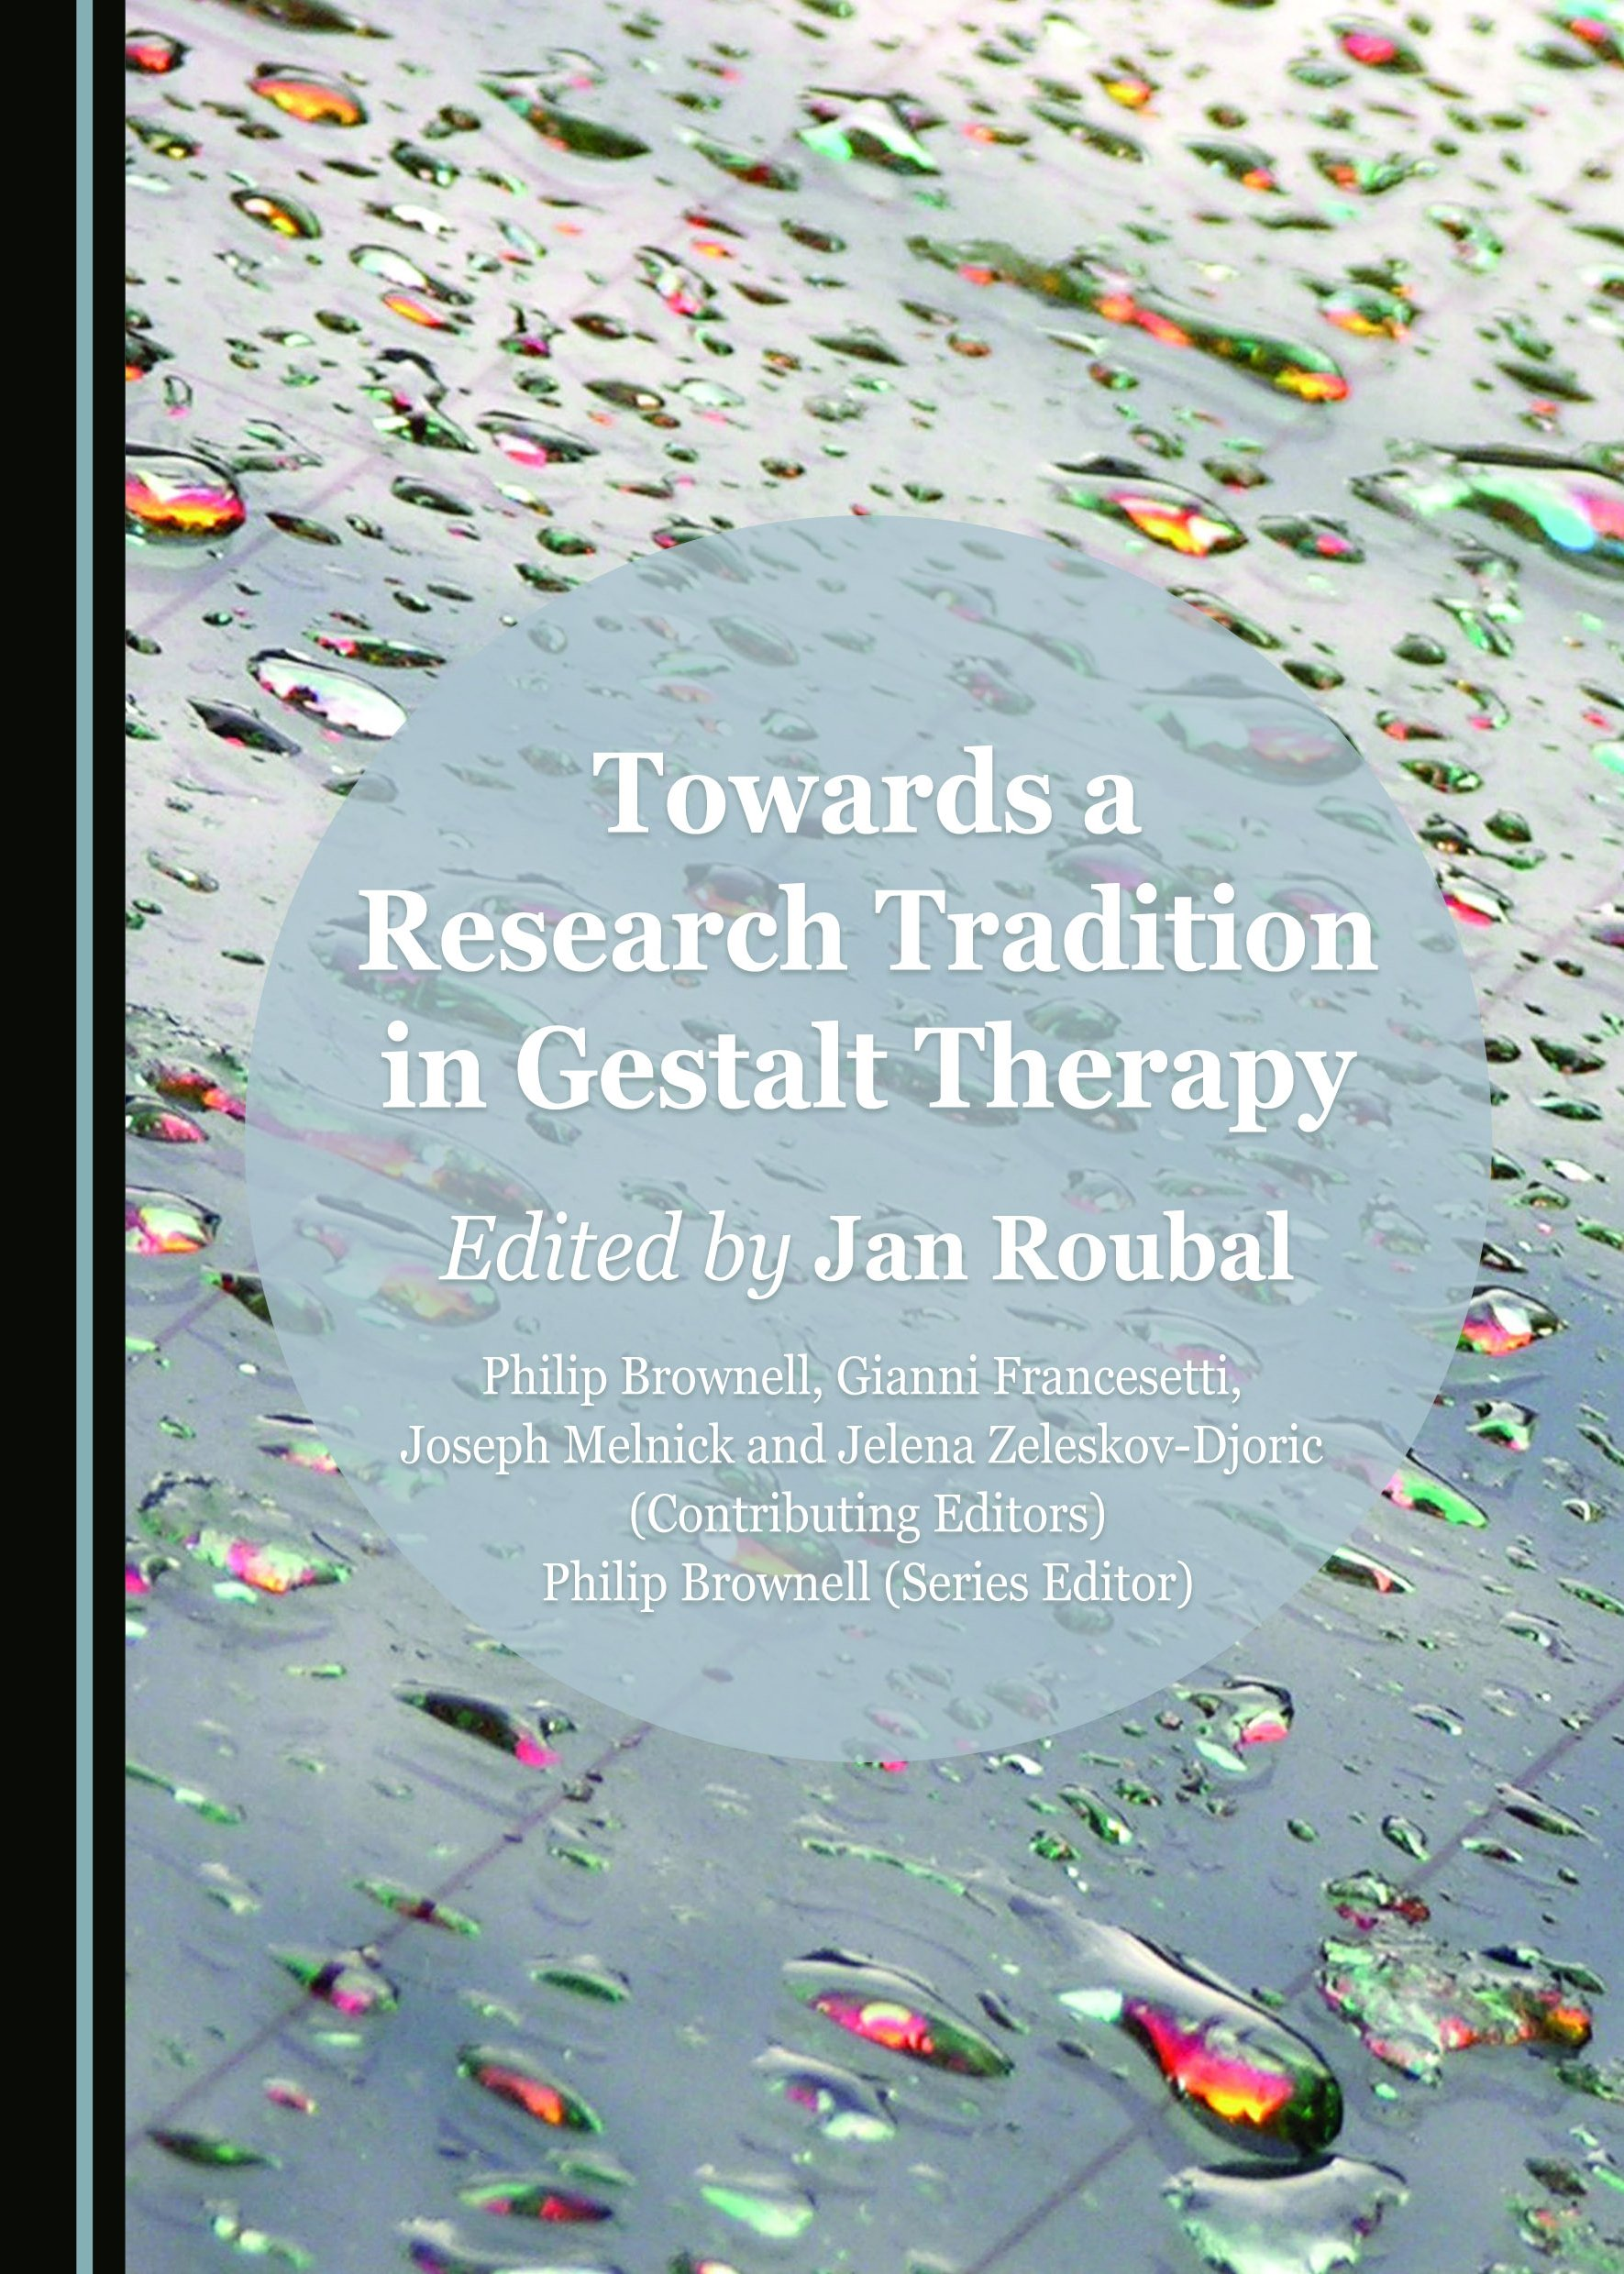 Towards a Research Tradition in Gestalt Therapy